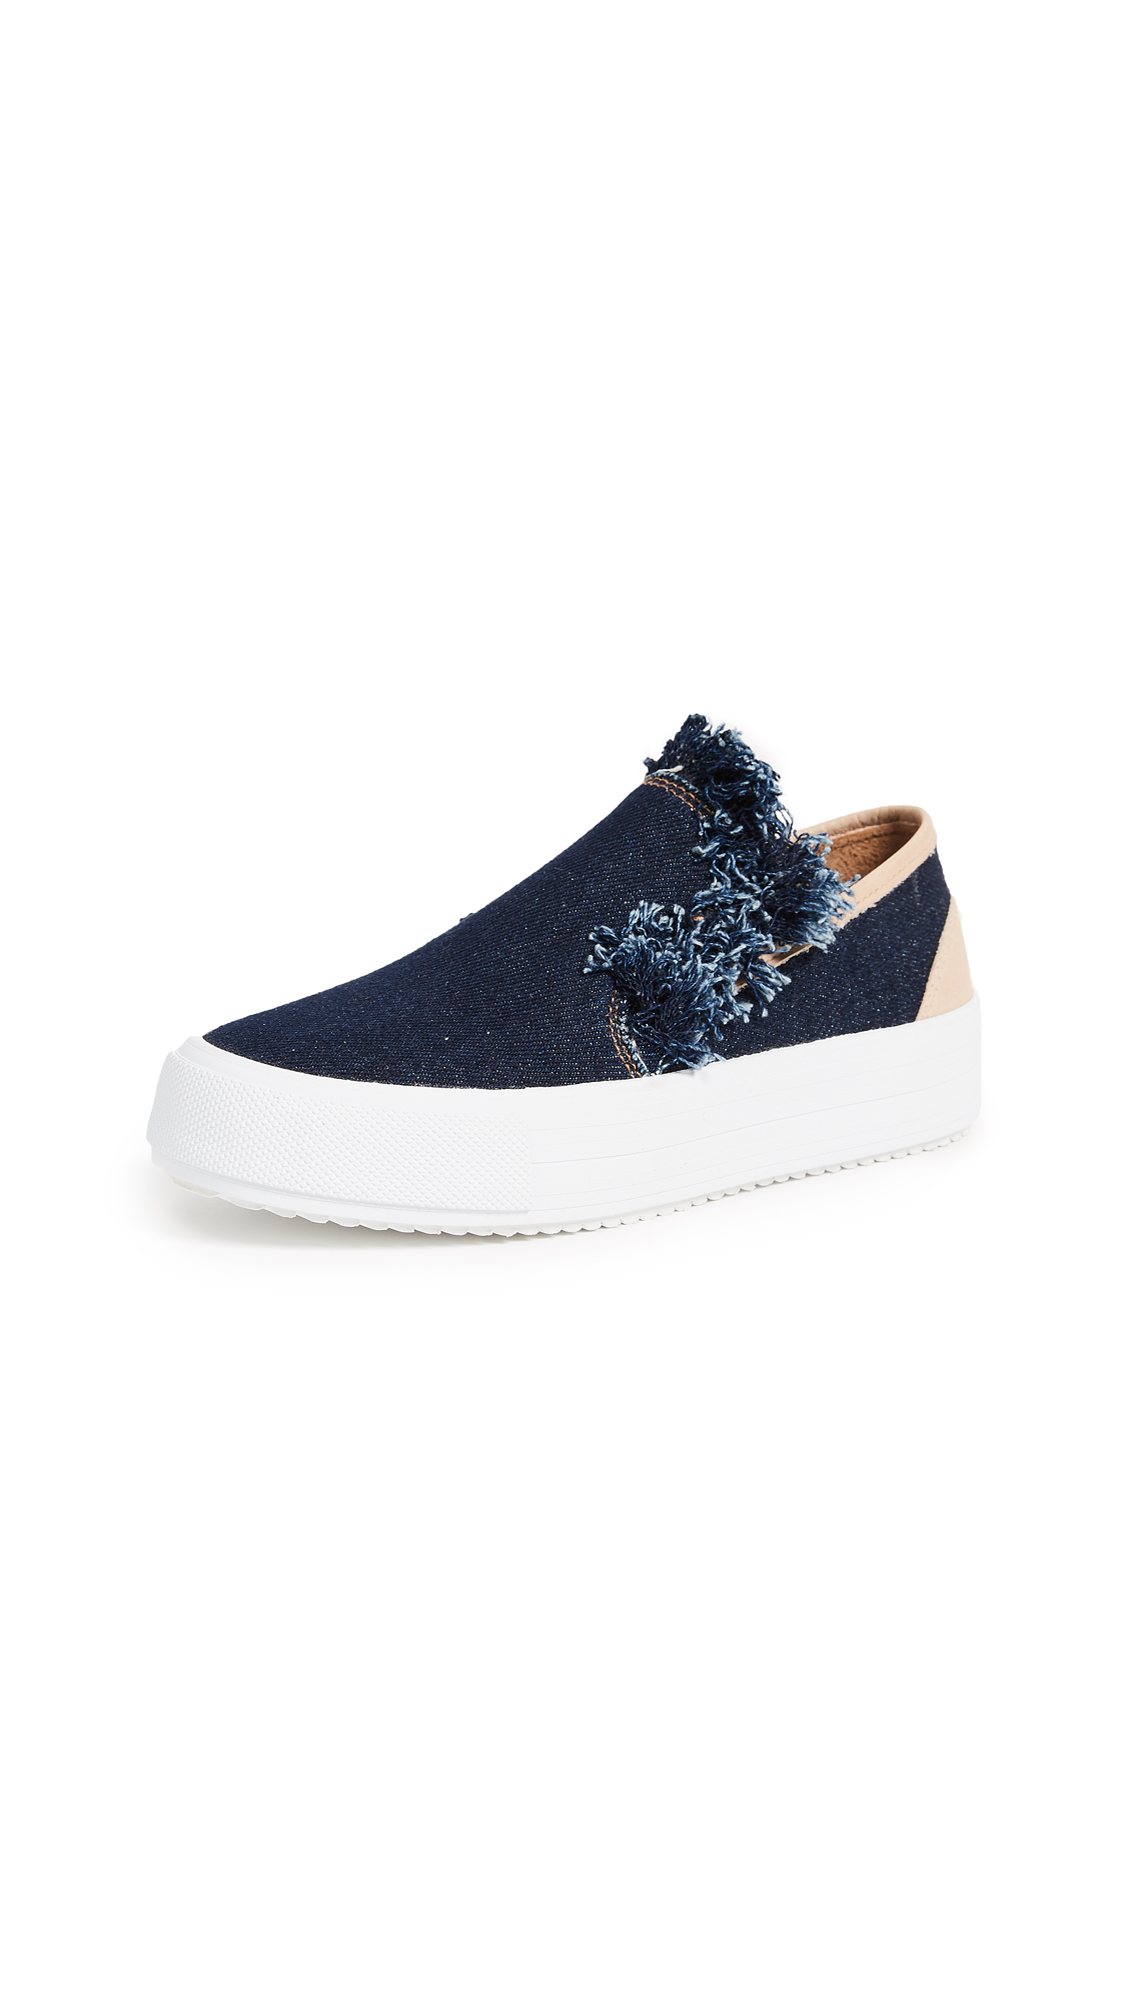 See by Chloe Vera Platform Slip On Sneakers - Denim